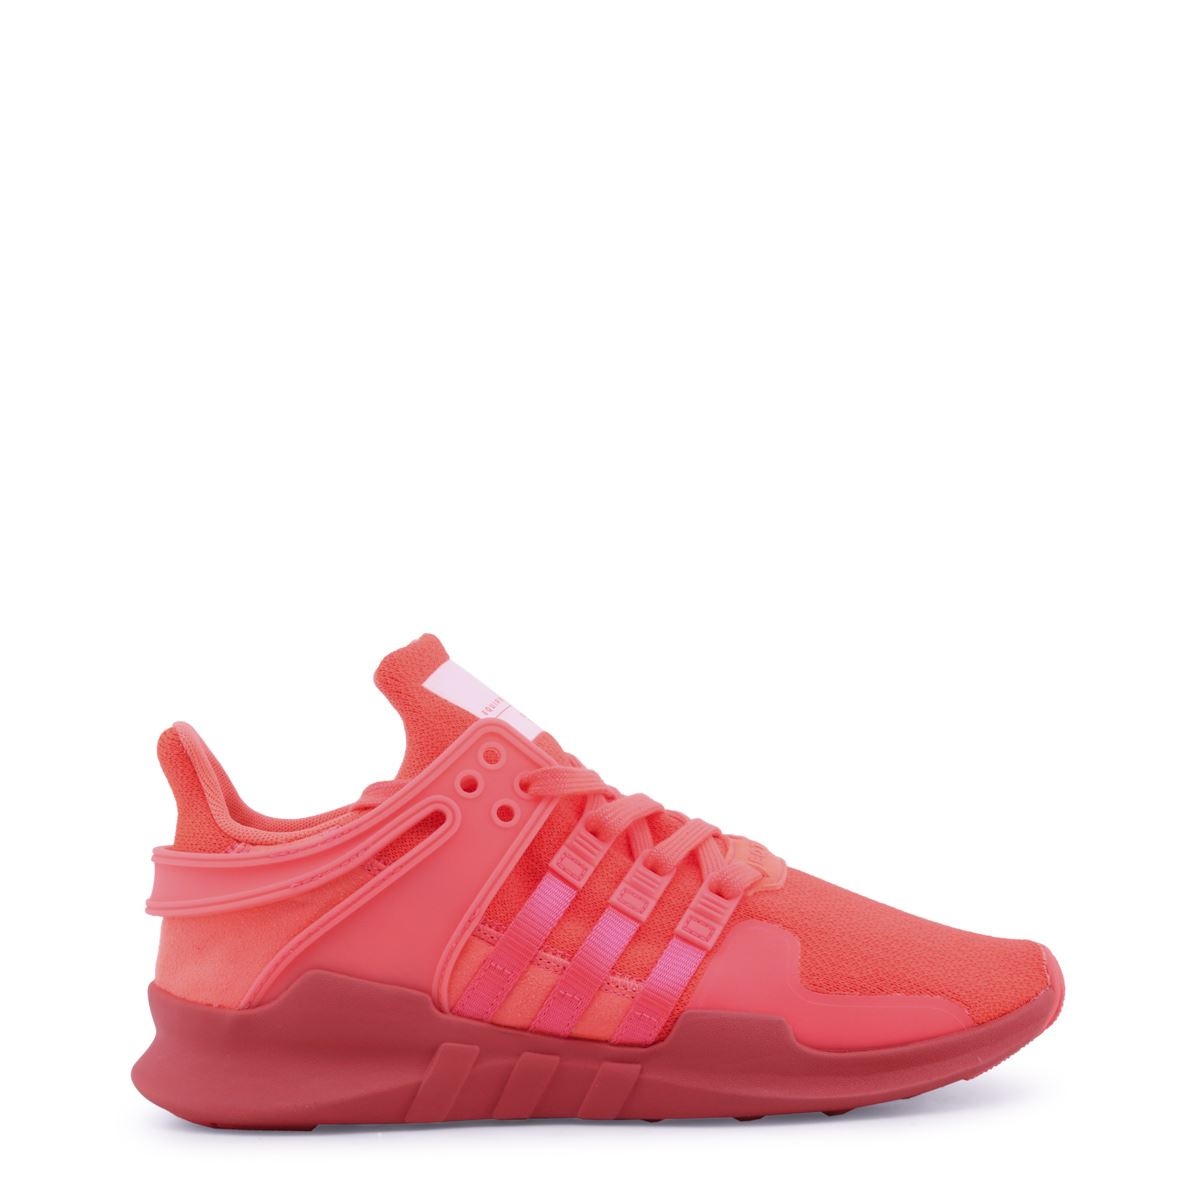 Details about Adidas Women s Red Low-Top Sneakers Lace-Up Modern Athletic  Rubber Shoes 0361d9b2b